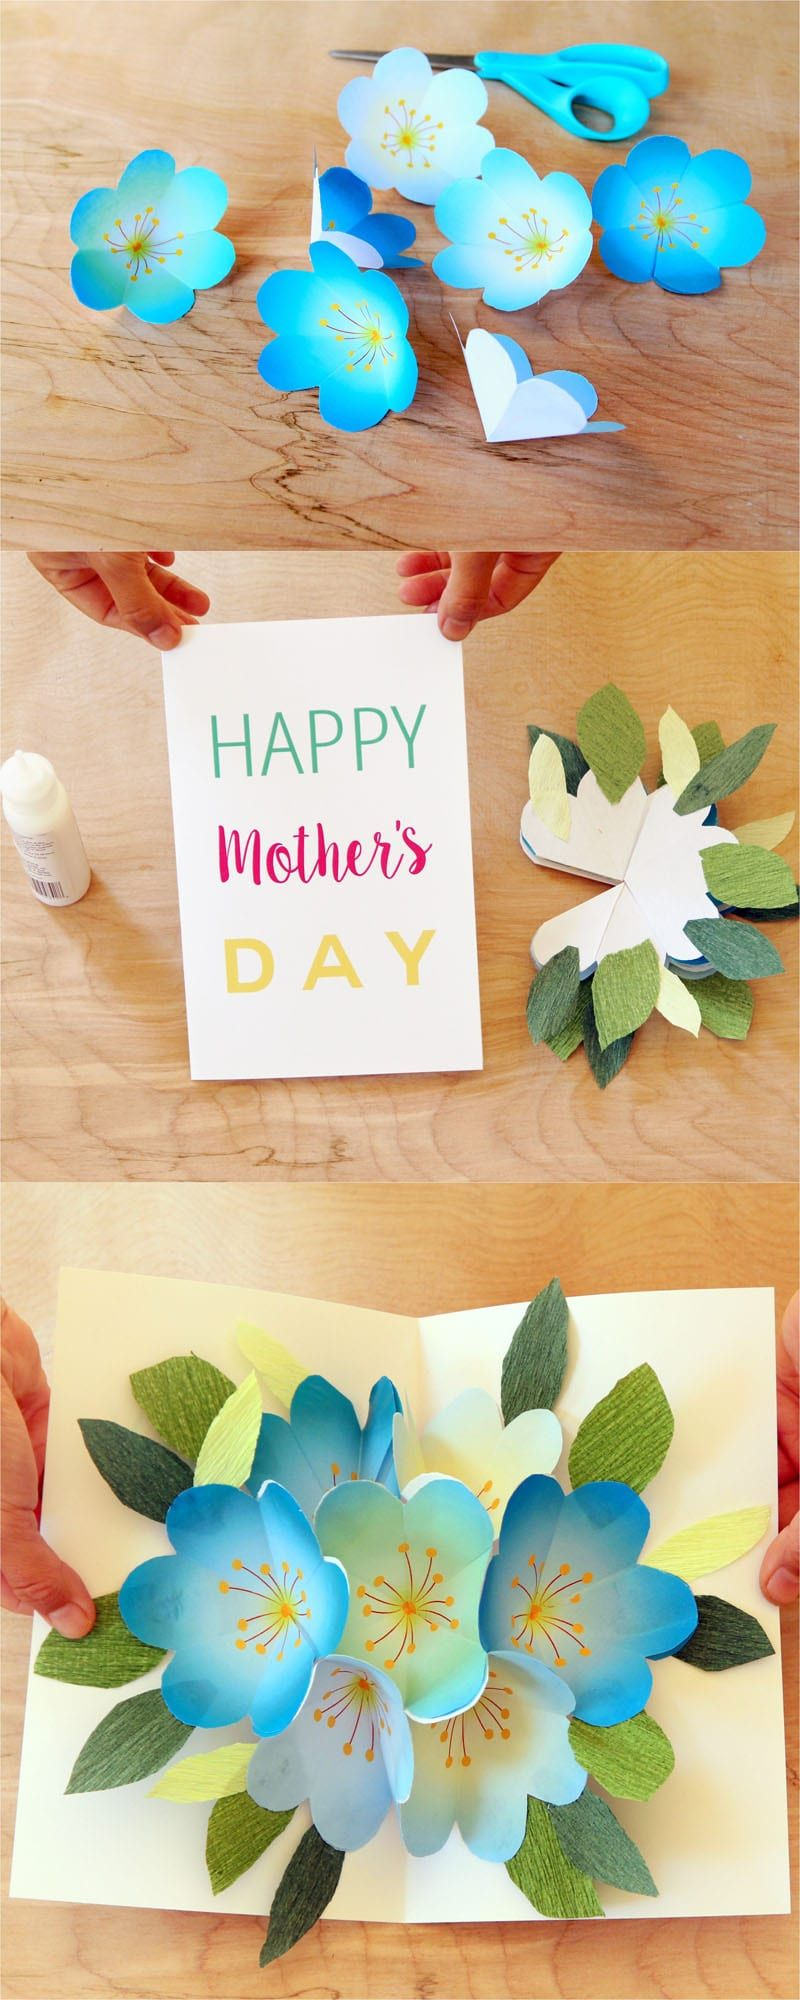 Pop up flowers diy printable motherus day card cards pinterest